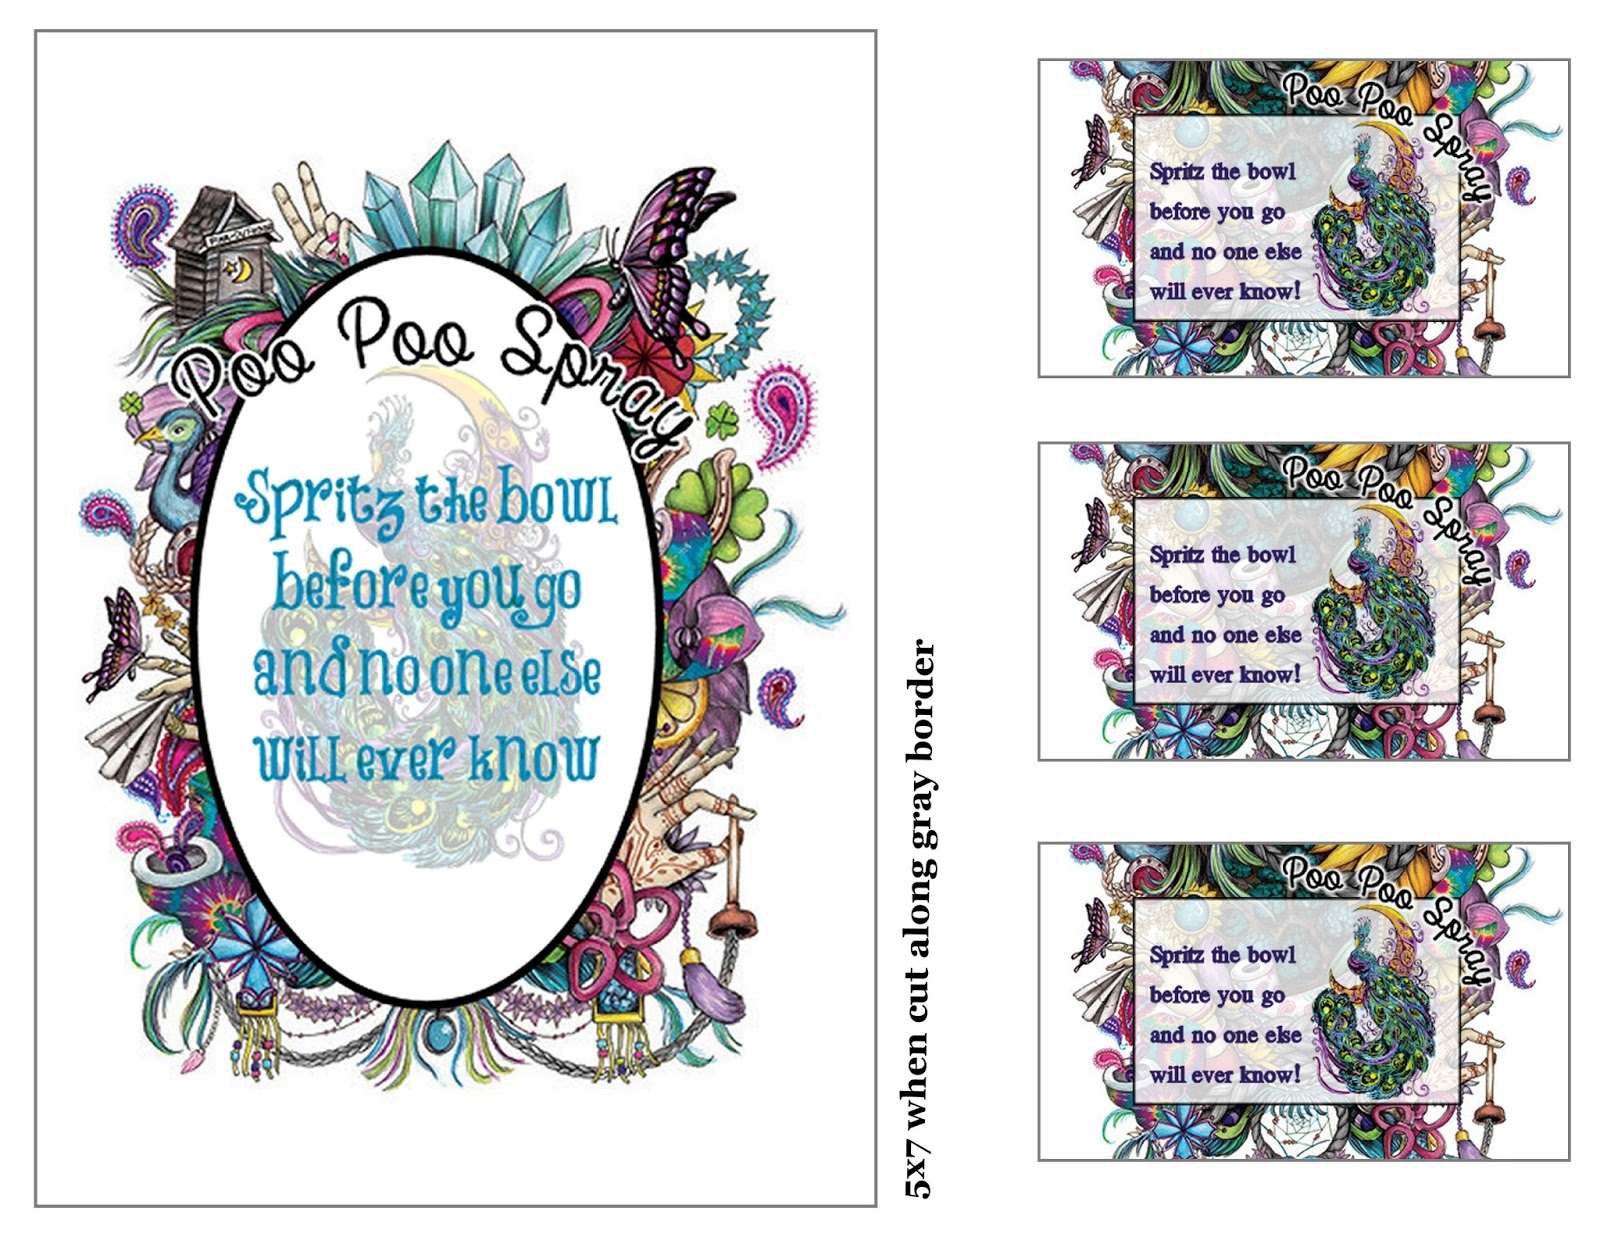 poo pourri label instructions